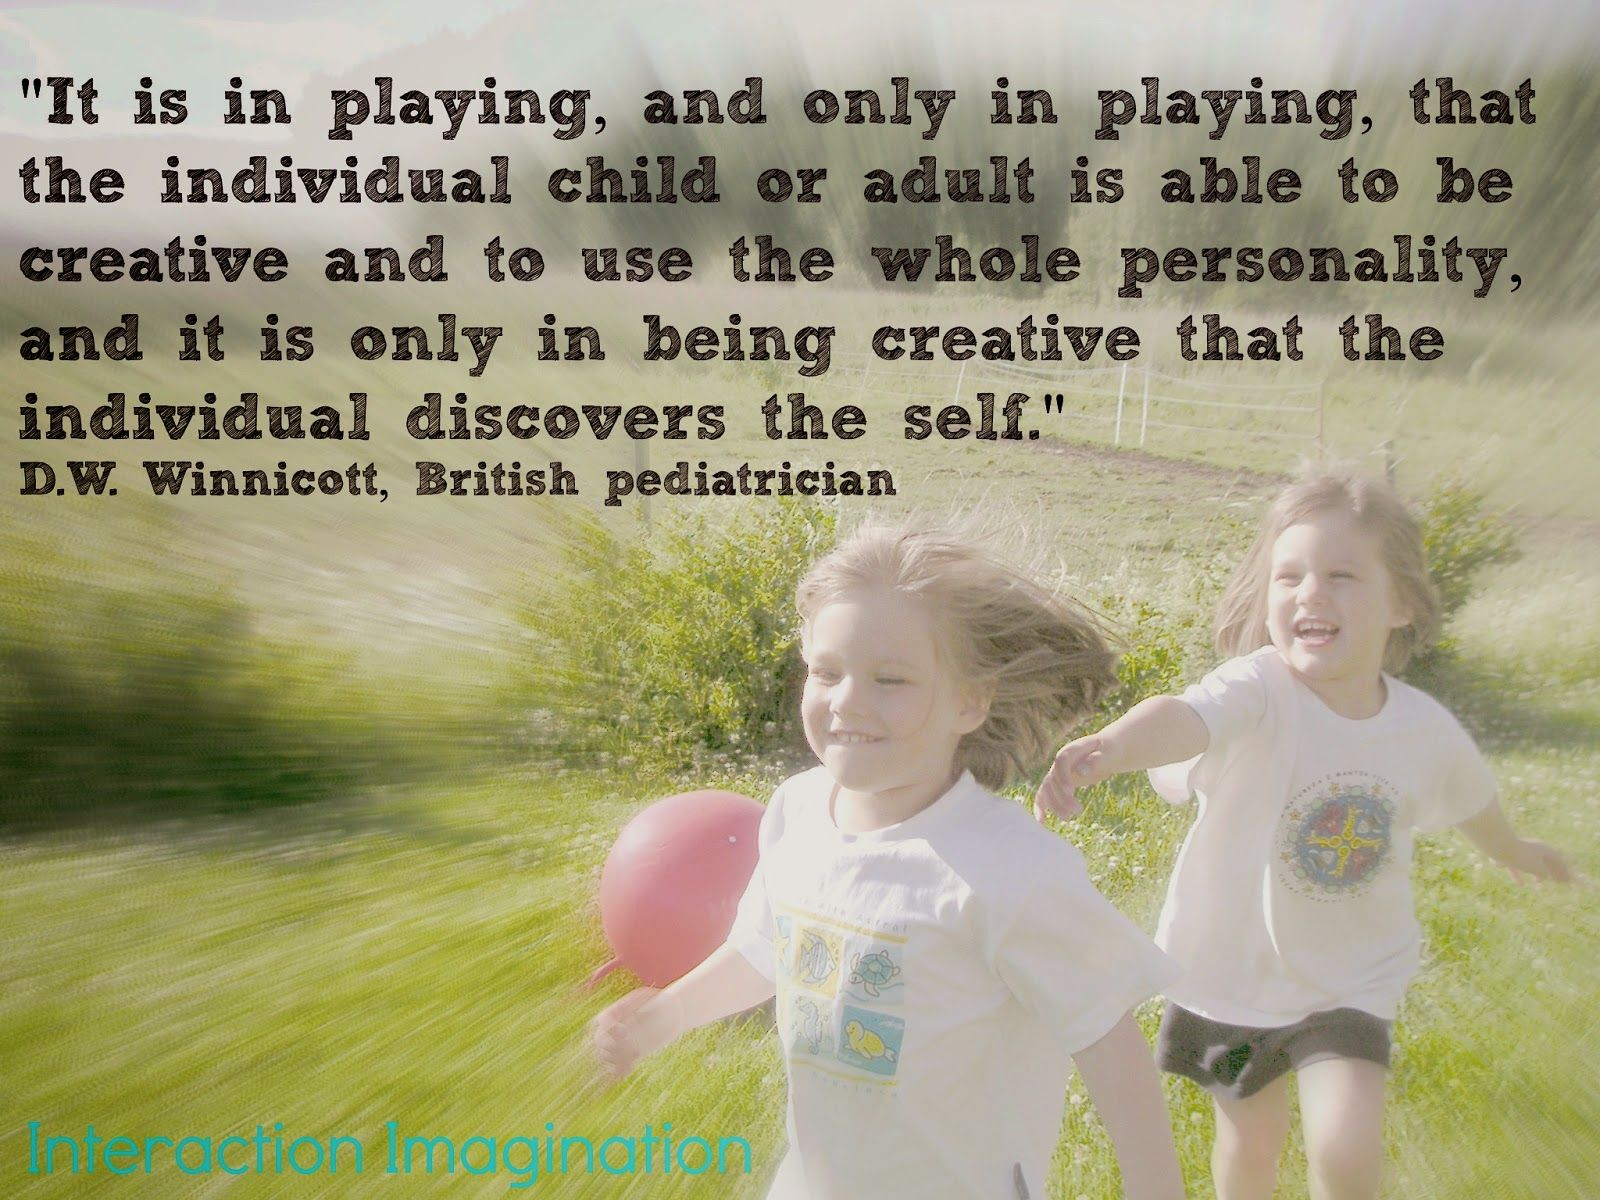 a post exploring thoughts about childhood... about play... about imagination...